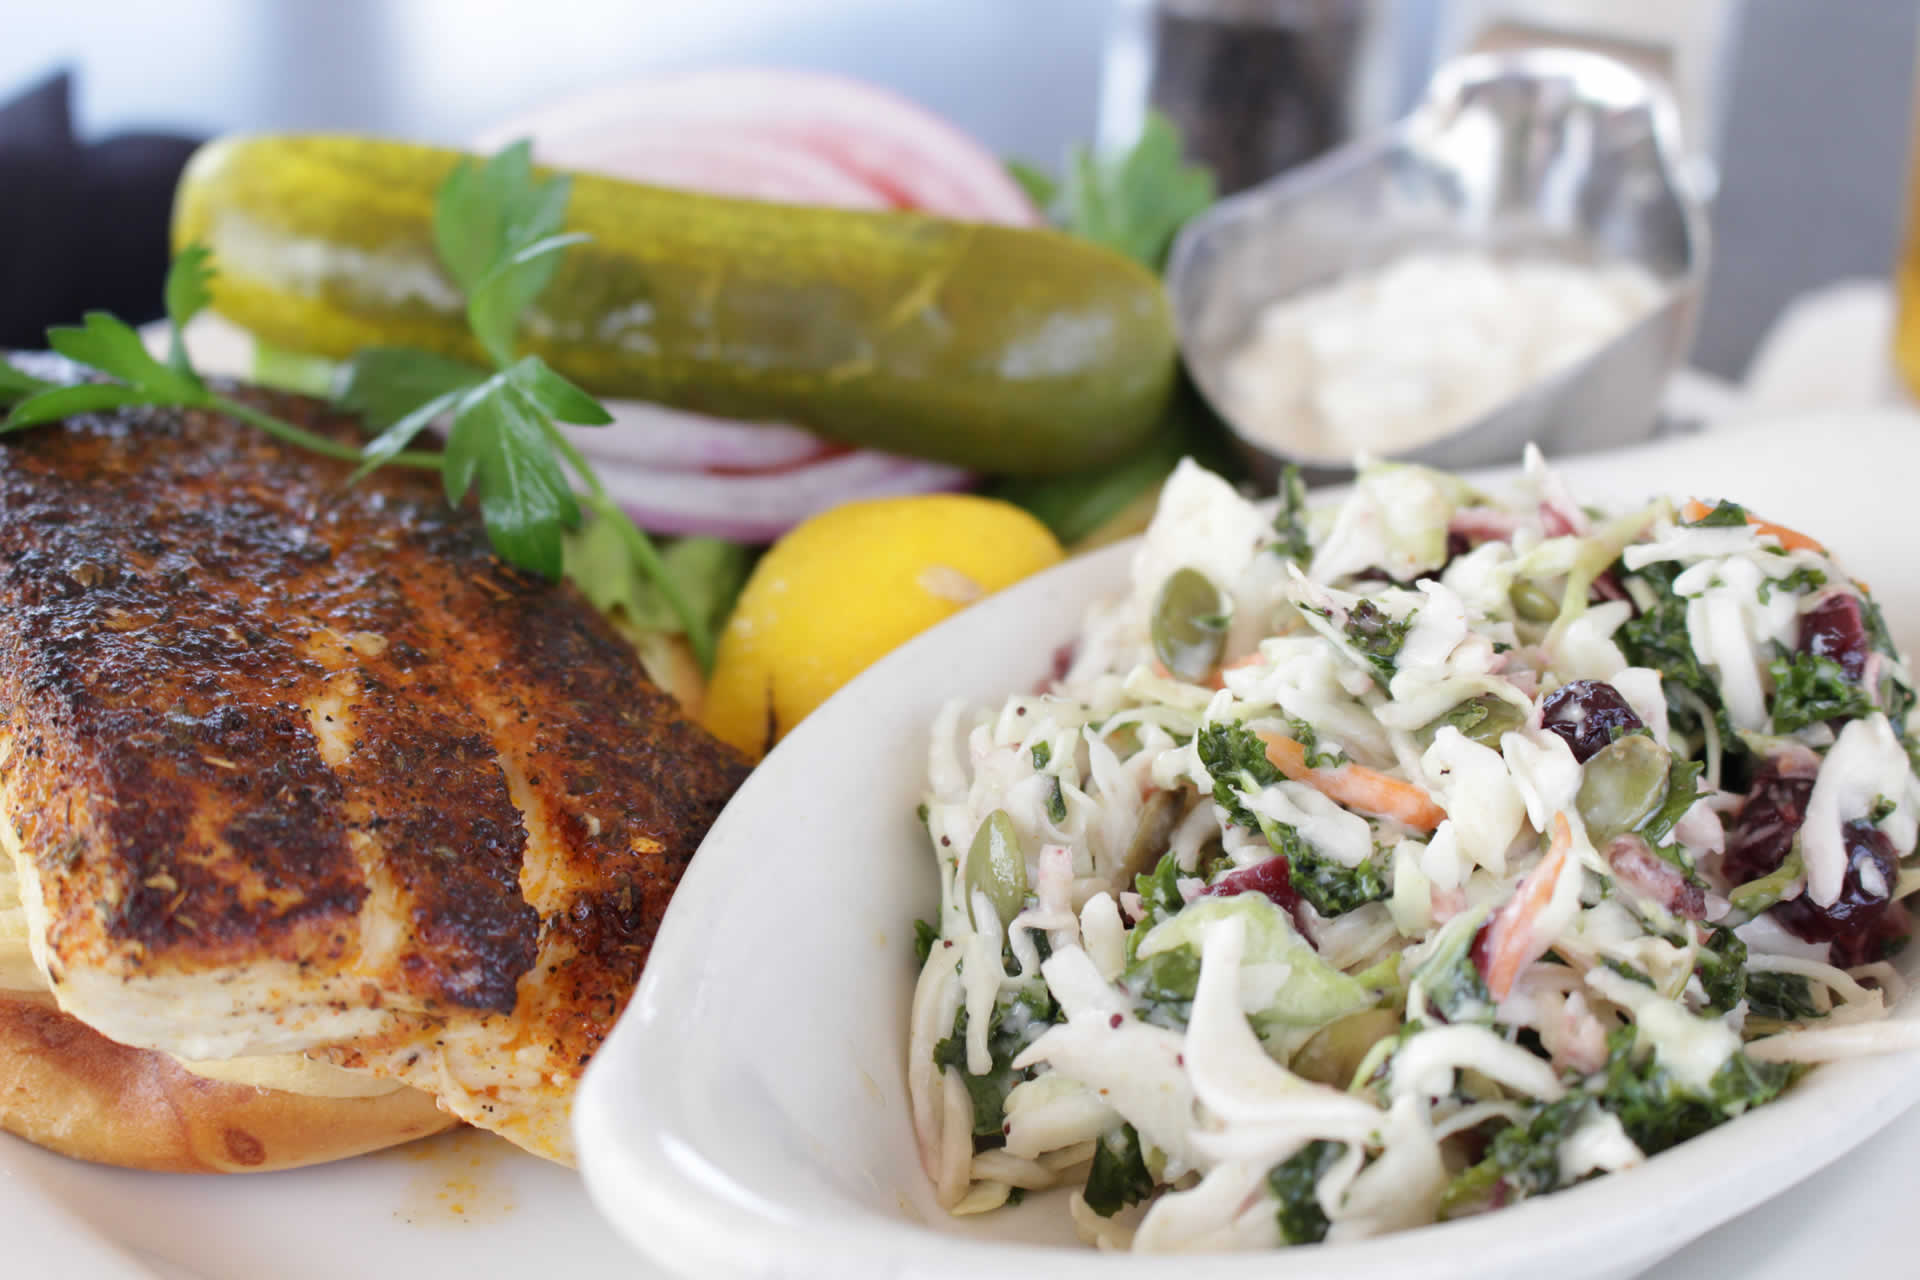 Blackened Mahi with Kale Slaw